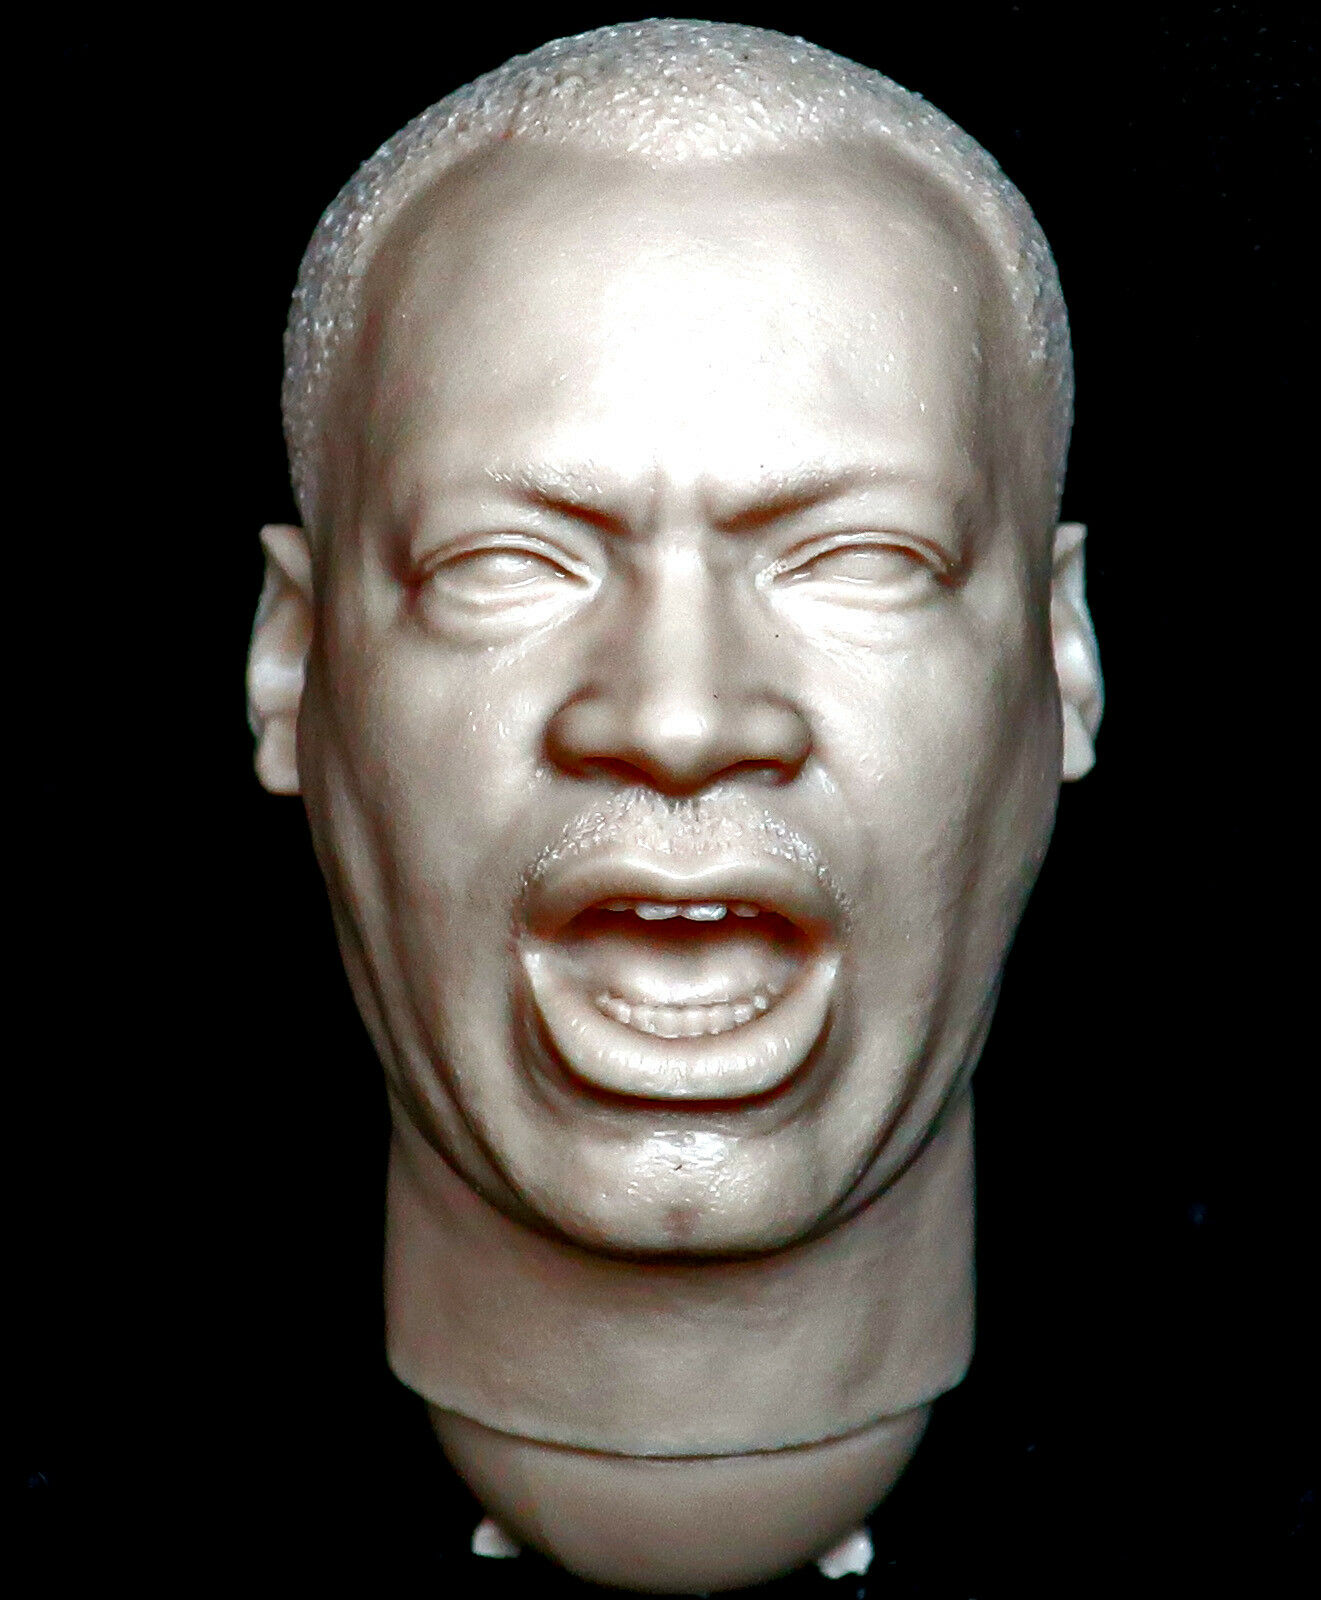 1 6 scale resin unpainted unpainted unpainted action figure head sculpt Martin Luther King 3R did b24ea5